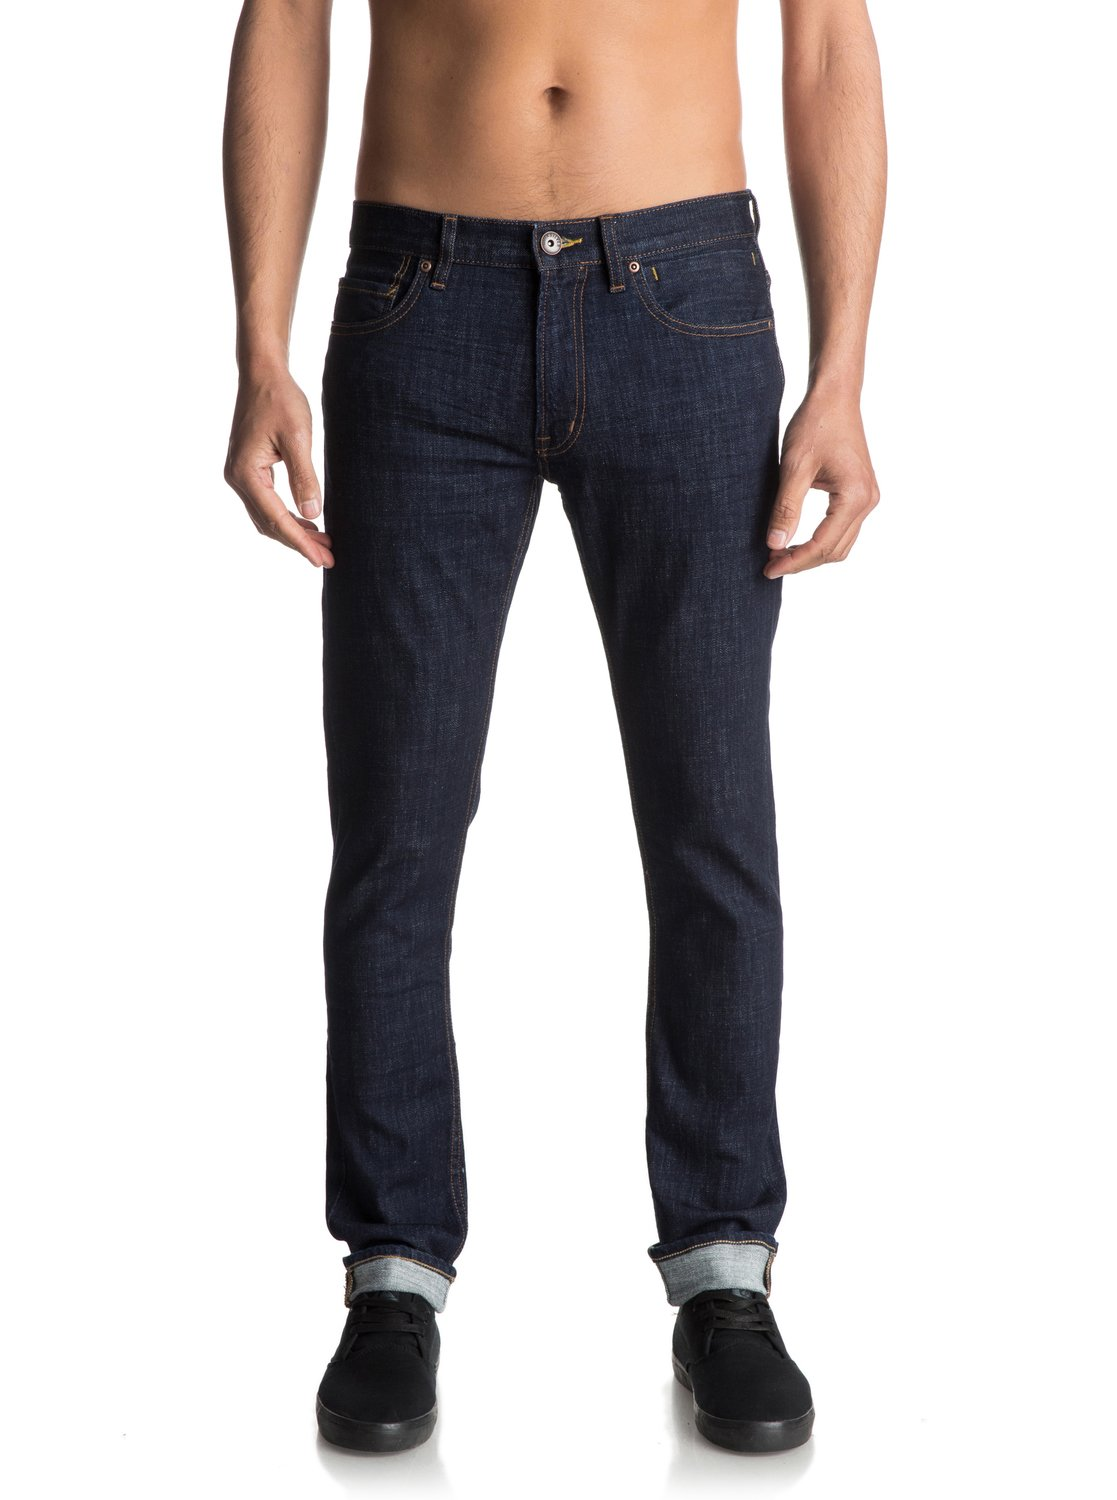 Shop our signature men's slim fit jeans at J Brand. The Tyler slim jean comes in various washes for a stylish look with any outfit. Check it out today!